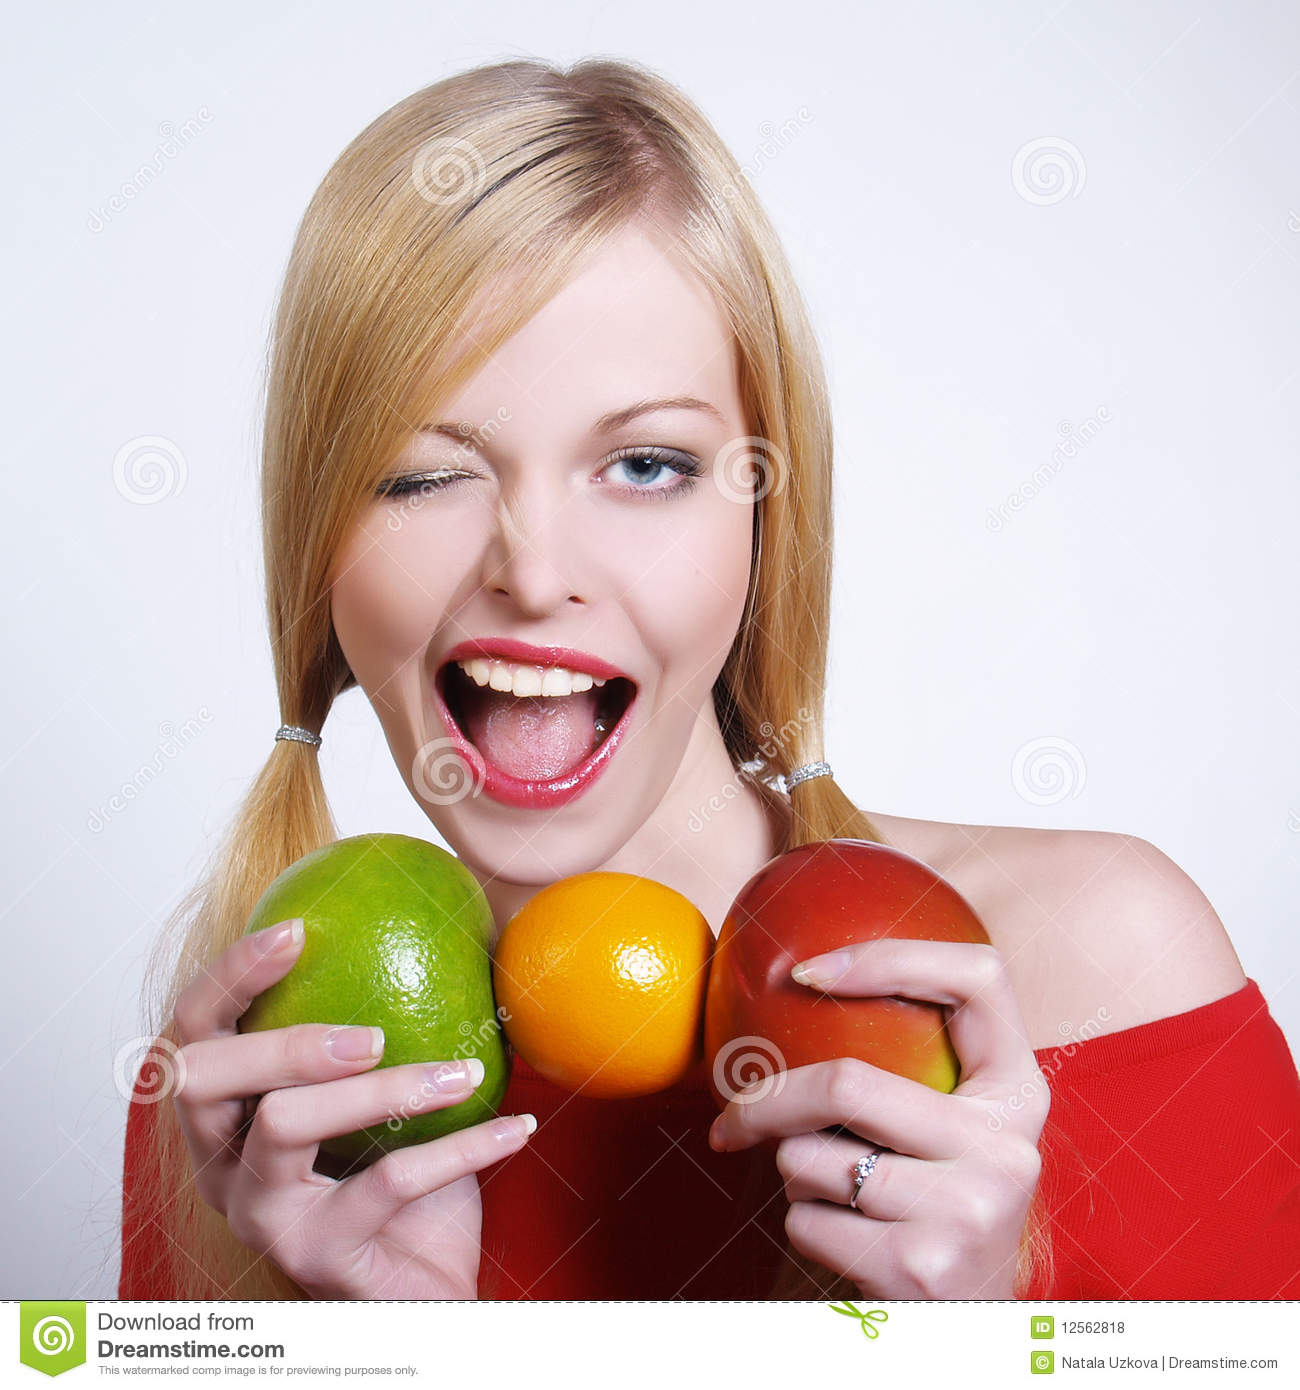 Download Portrate Of Beautiful Girl With The Fruits Stock Photo - Image of dieting, fruit: 12562818